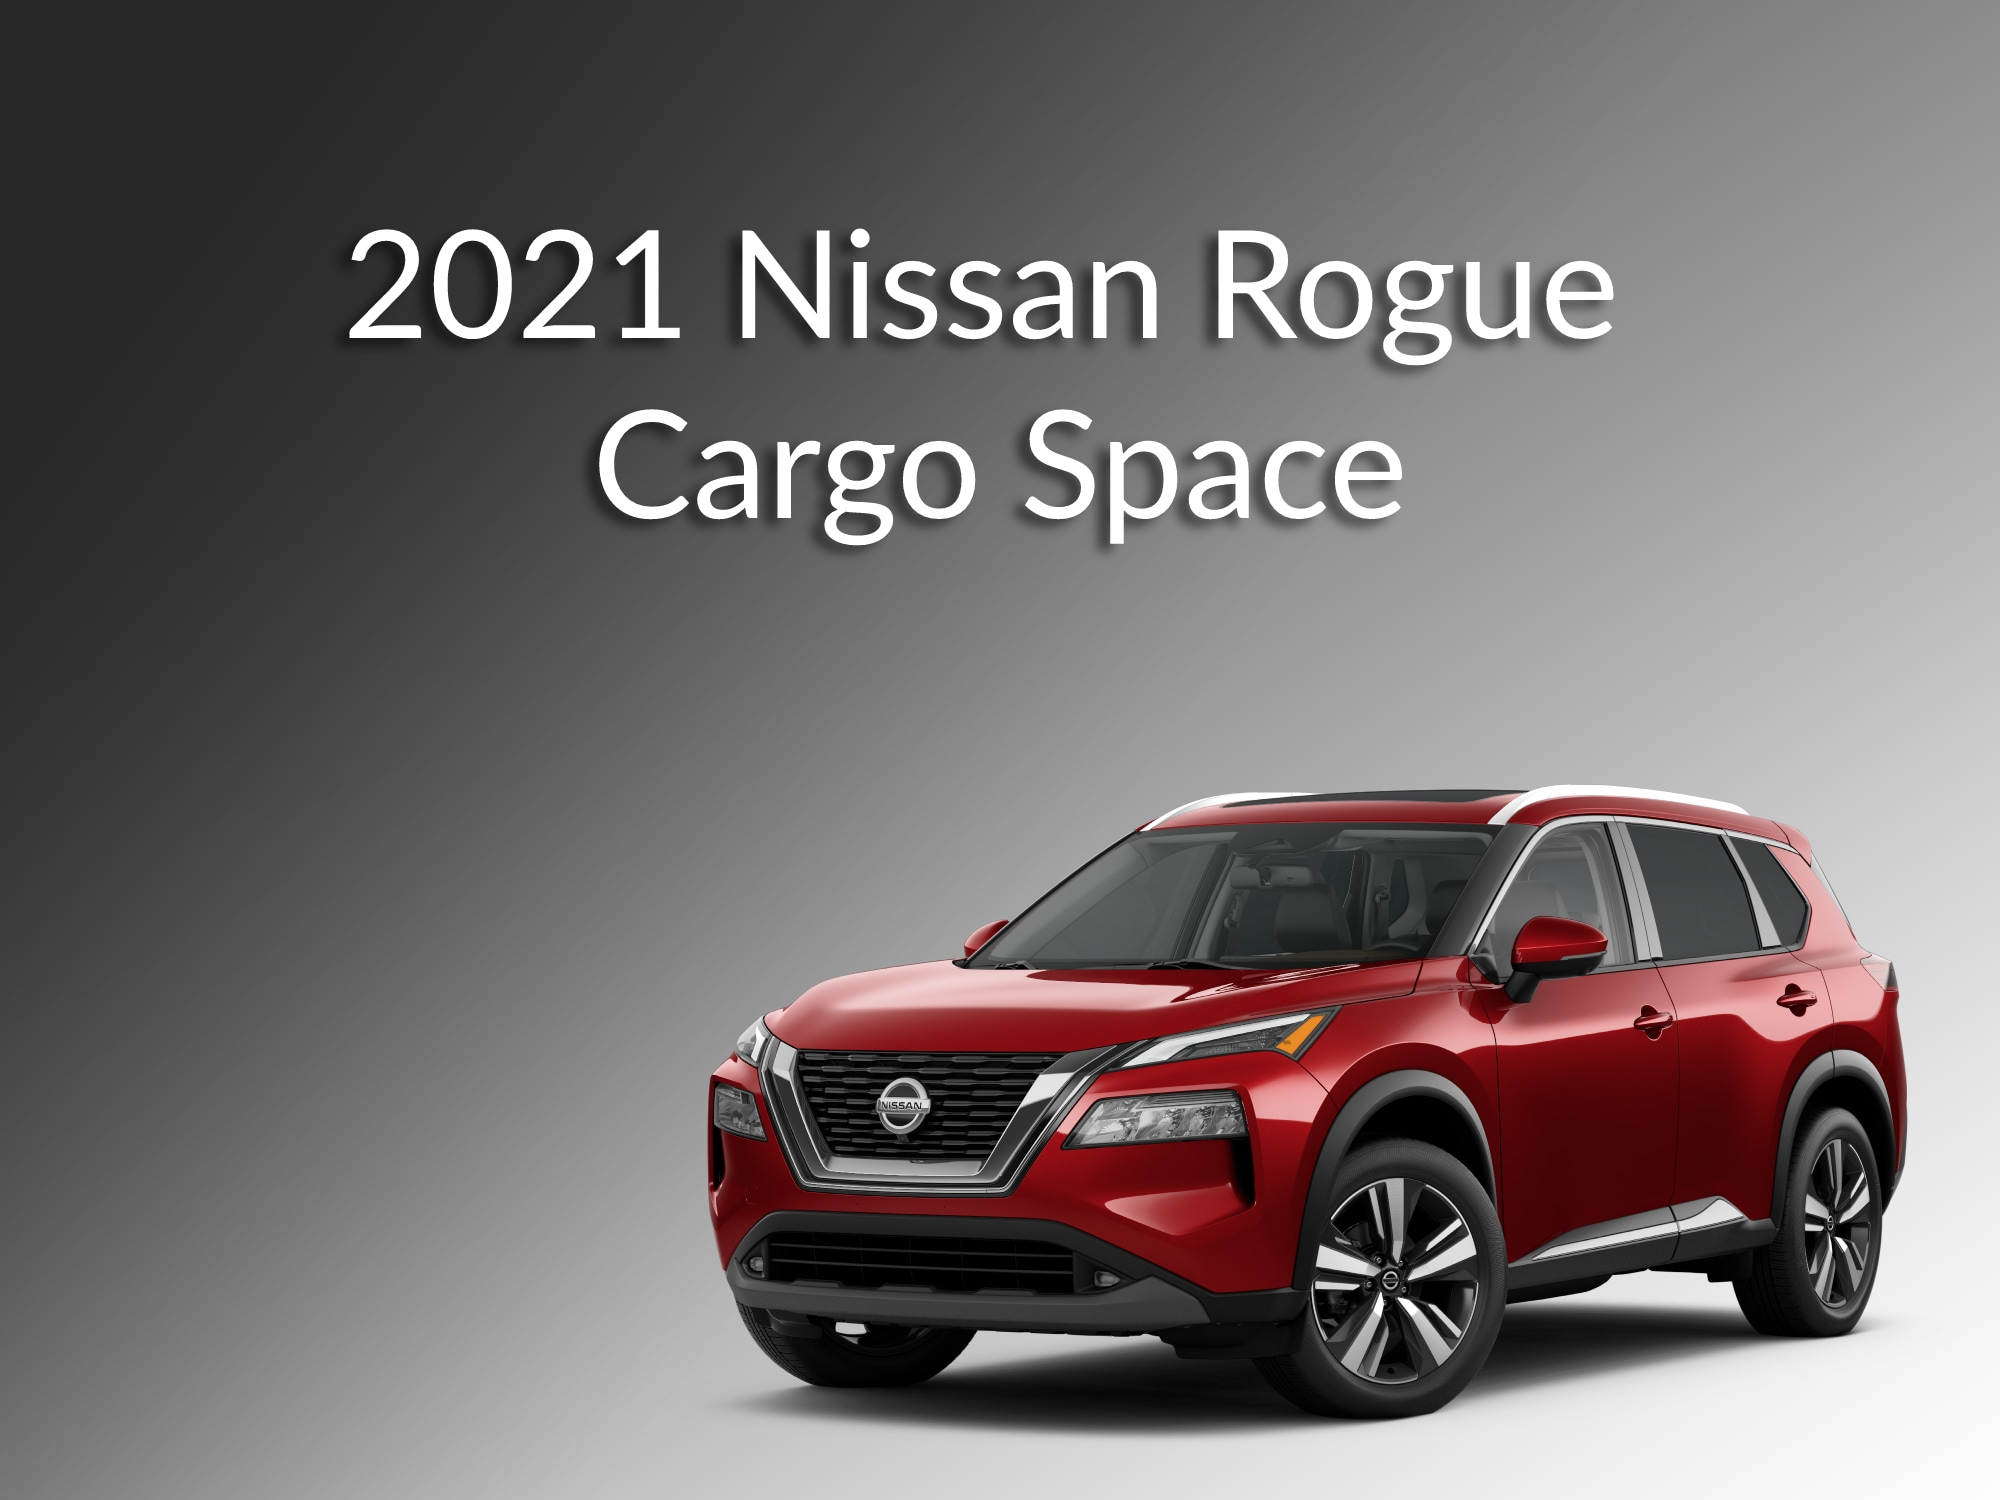 Red Nissan Rogue Front 3/4 View with gradient black and white background